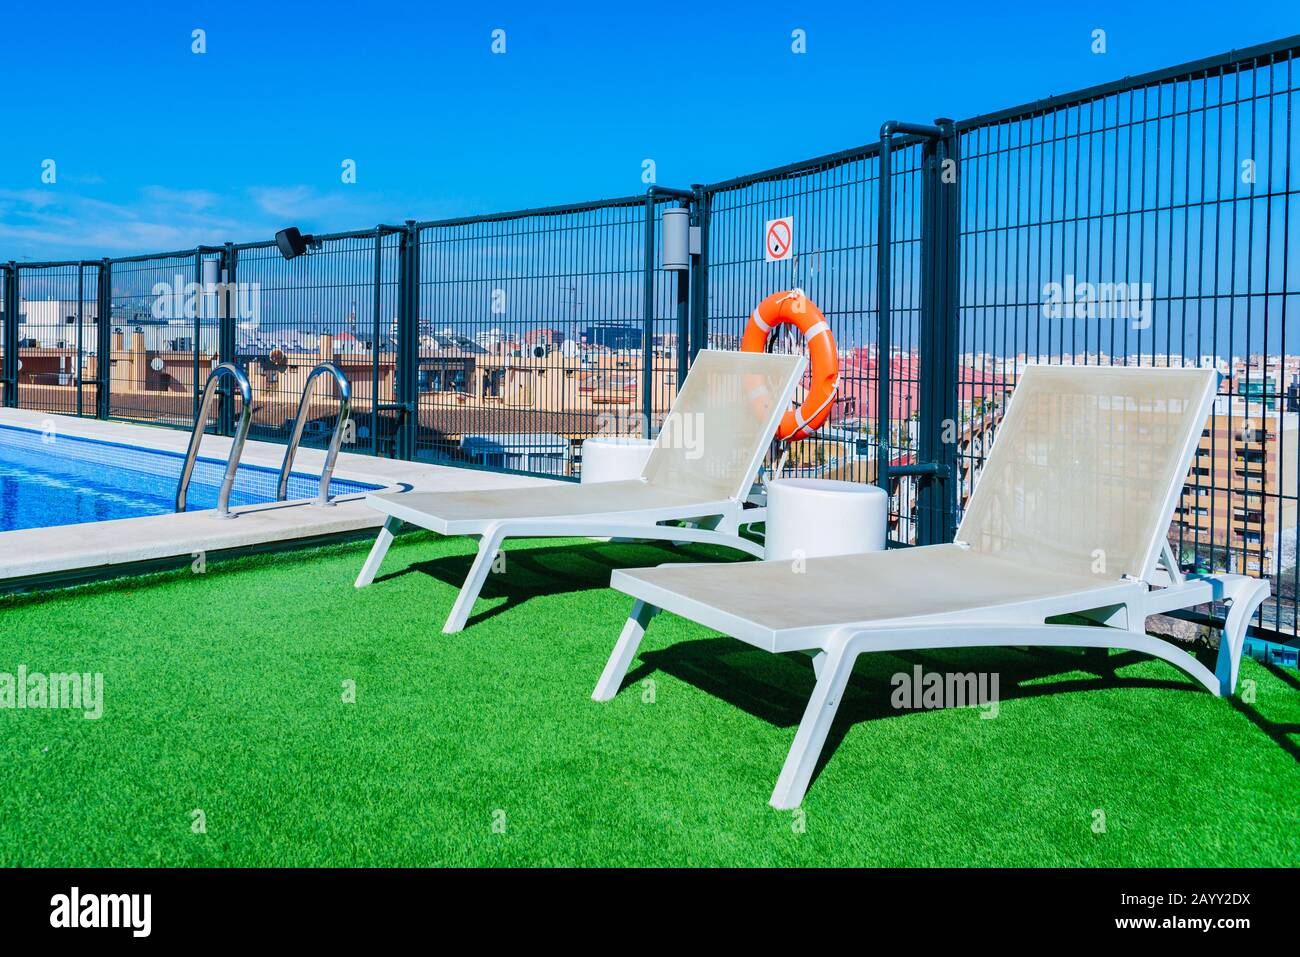 A Swimming Pool With Sun Beds On The Roof Of A Building In The City Stock Photo Alamy